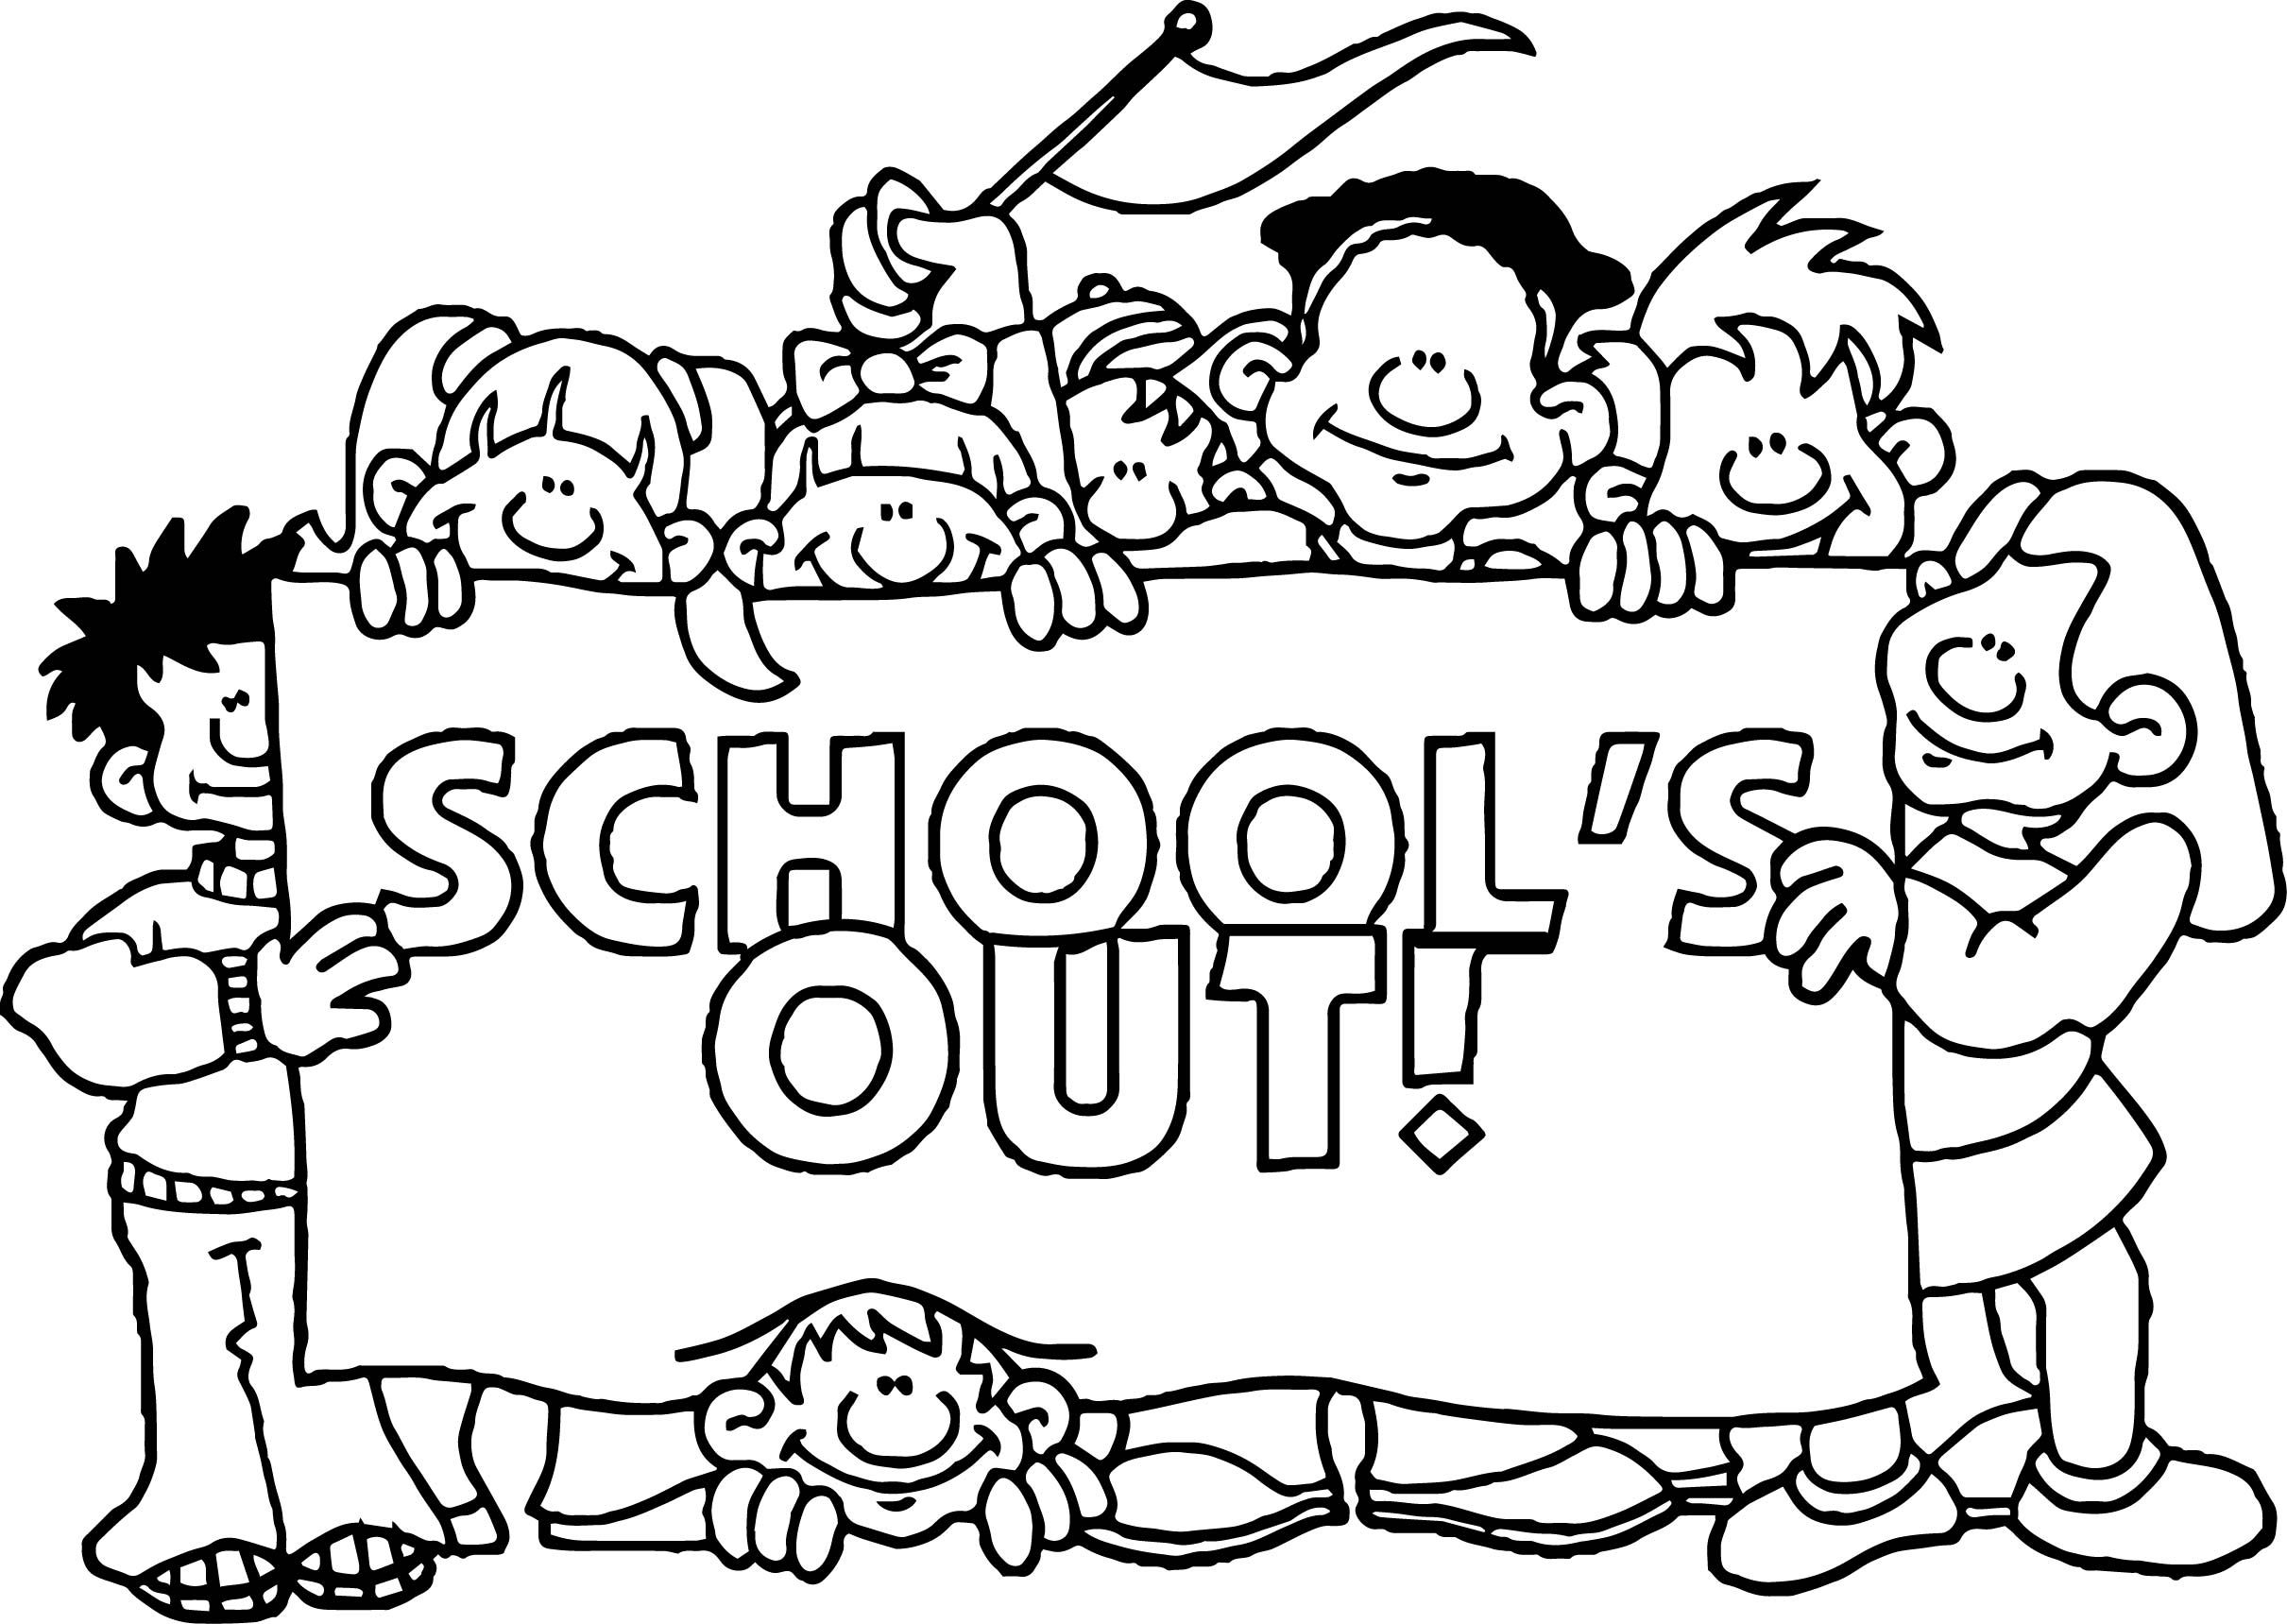 Awesome Summer Schools Out Coloring Page Summer Coloring Pages